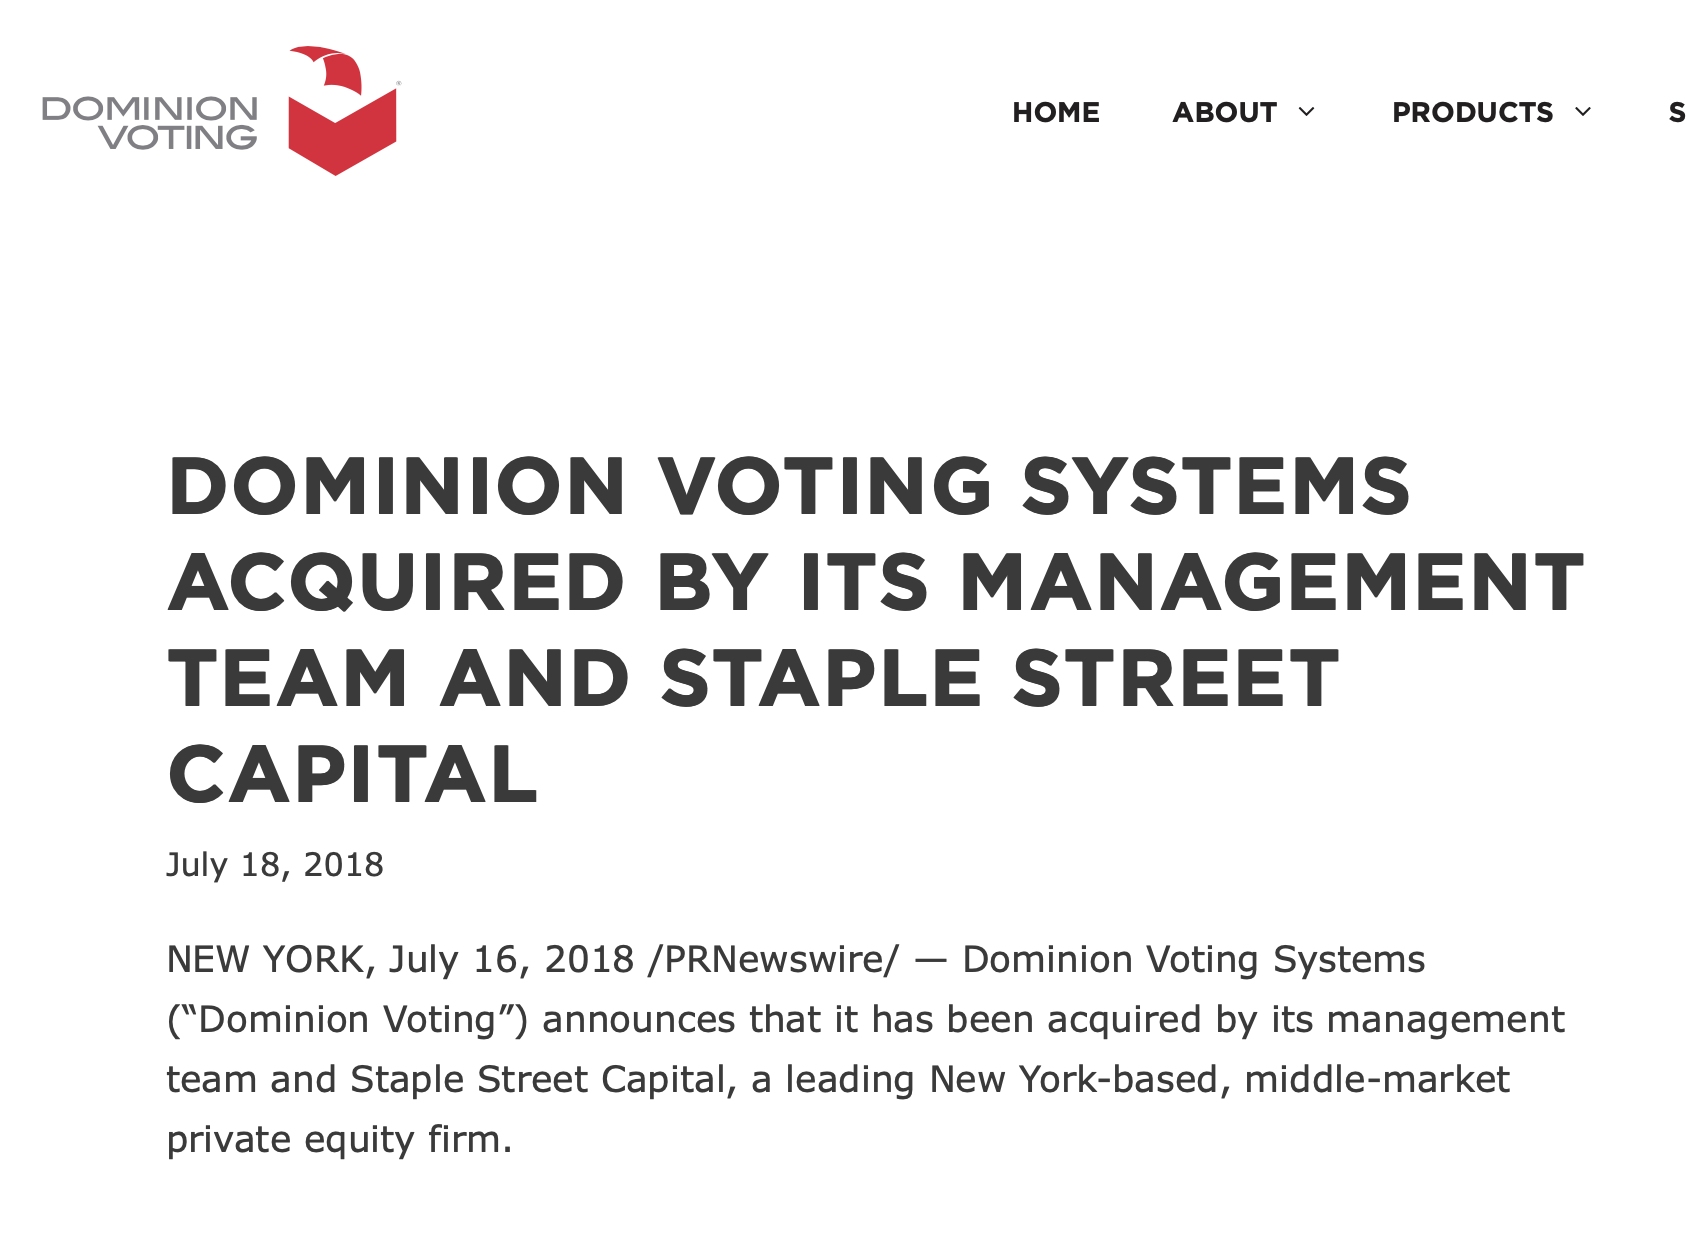 Dominion Voting with One of Its Headquarters in Toronto Chinatown ...